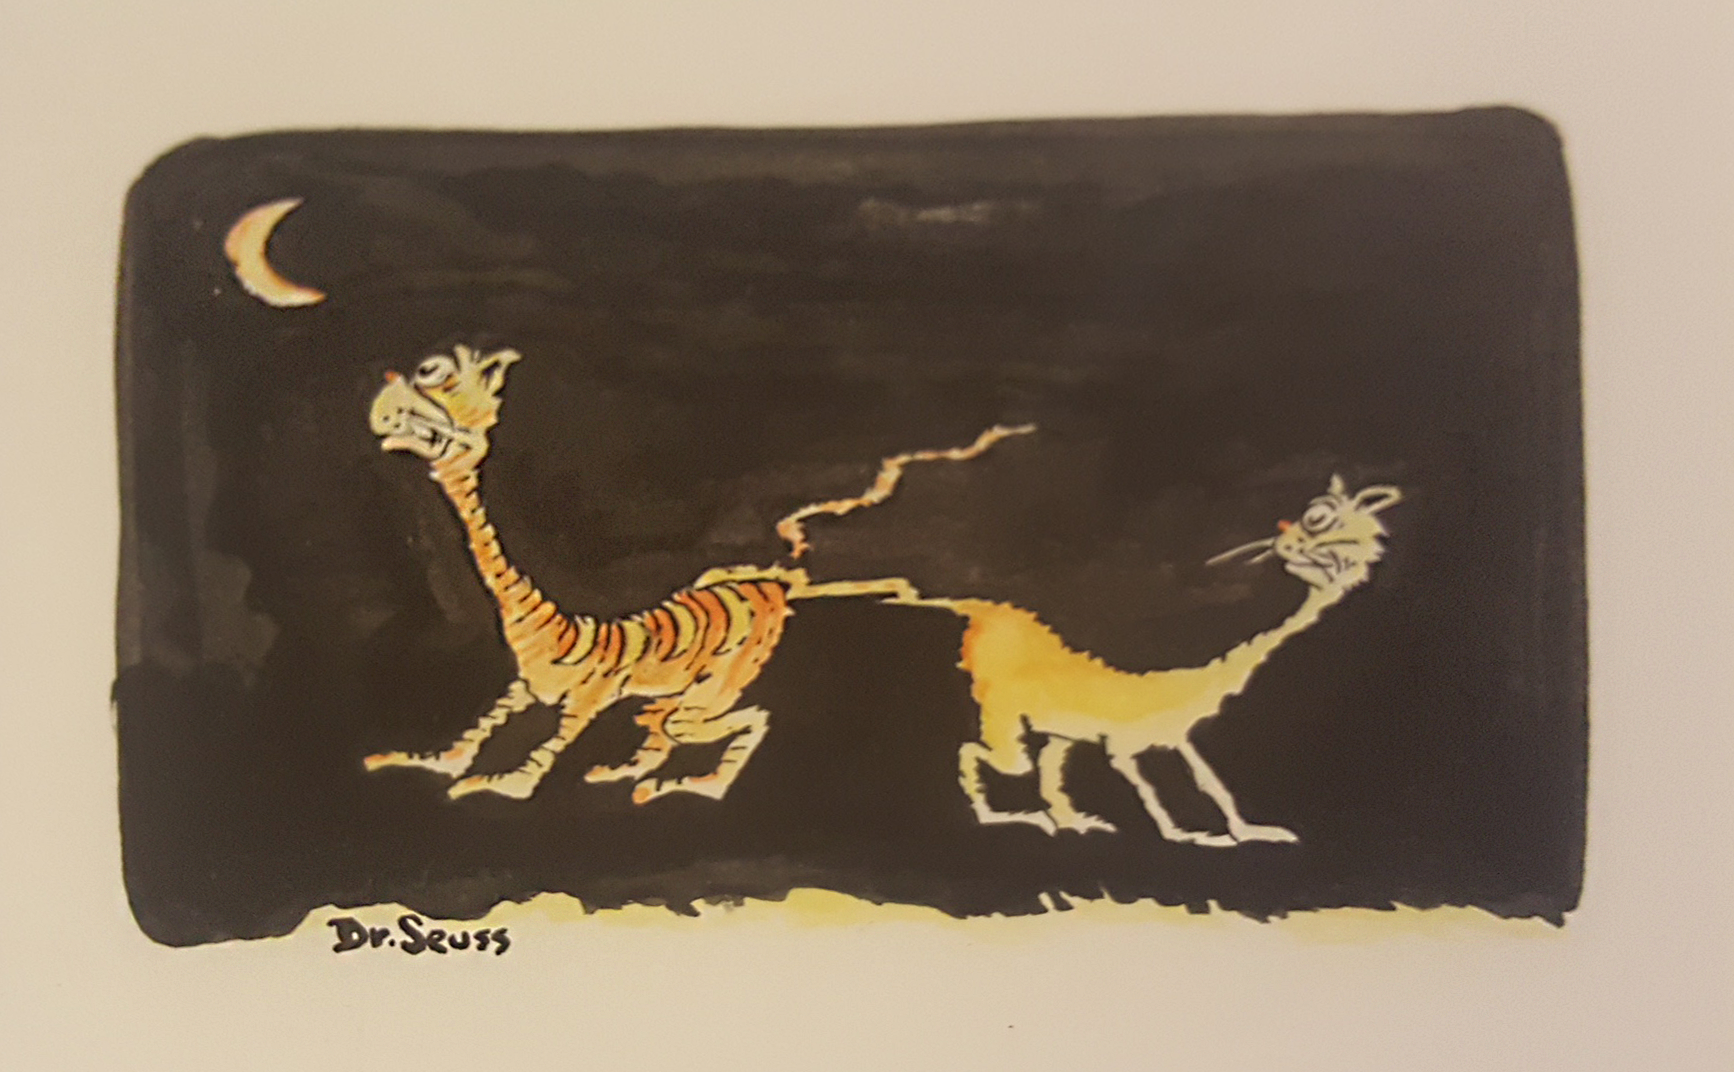 Dr. Seuss   Two Hip Cats  c. 1960's Mixed Media on Paper 7 x 5.5 in.  Signed byDr. Seuss